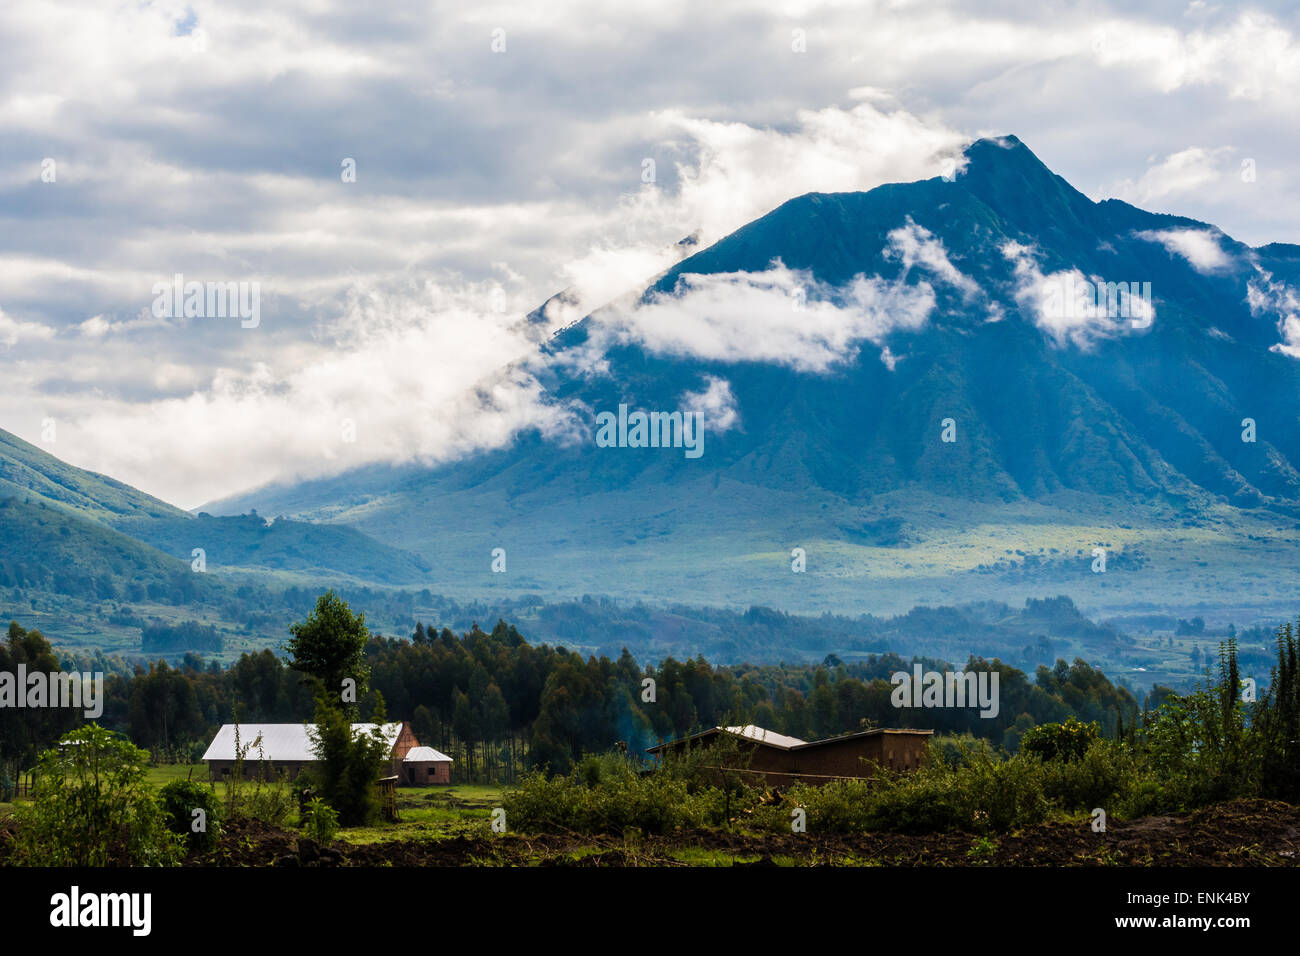 Houses, mountains, and clouds in Parc National des Volcans, Rwanda - Stock Image